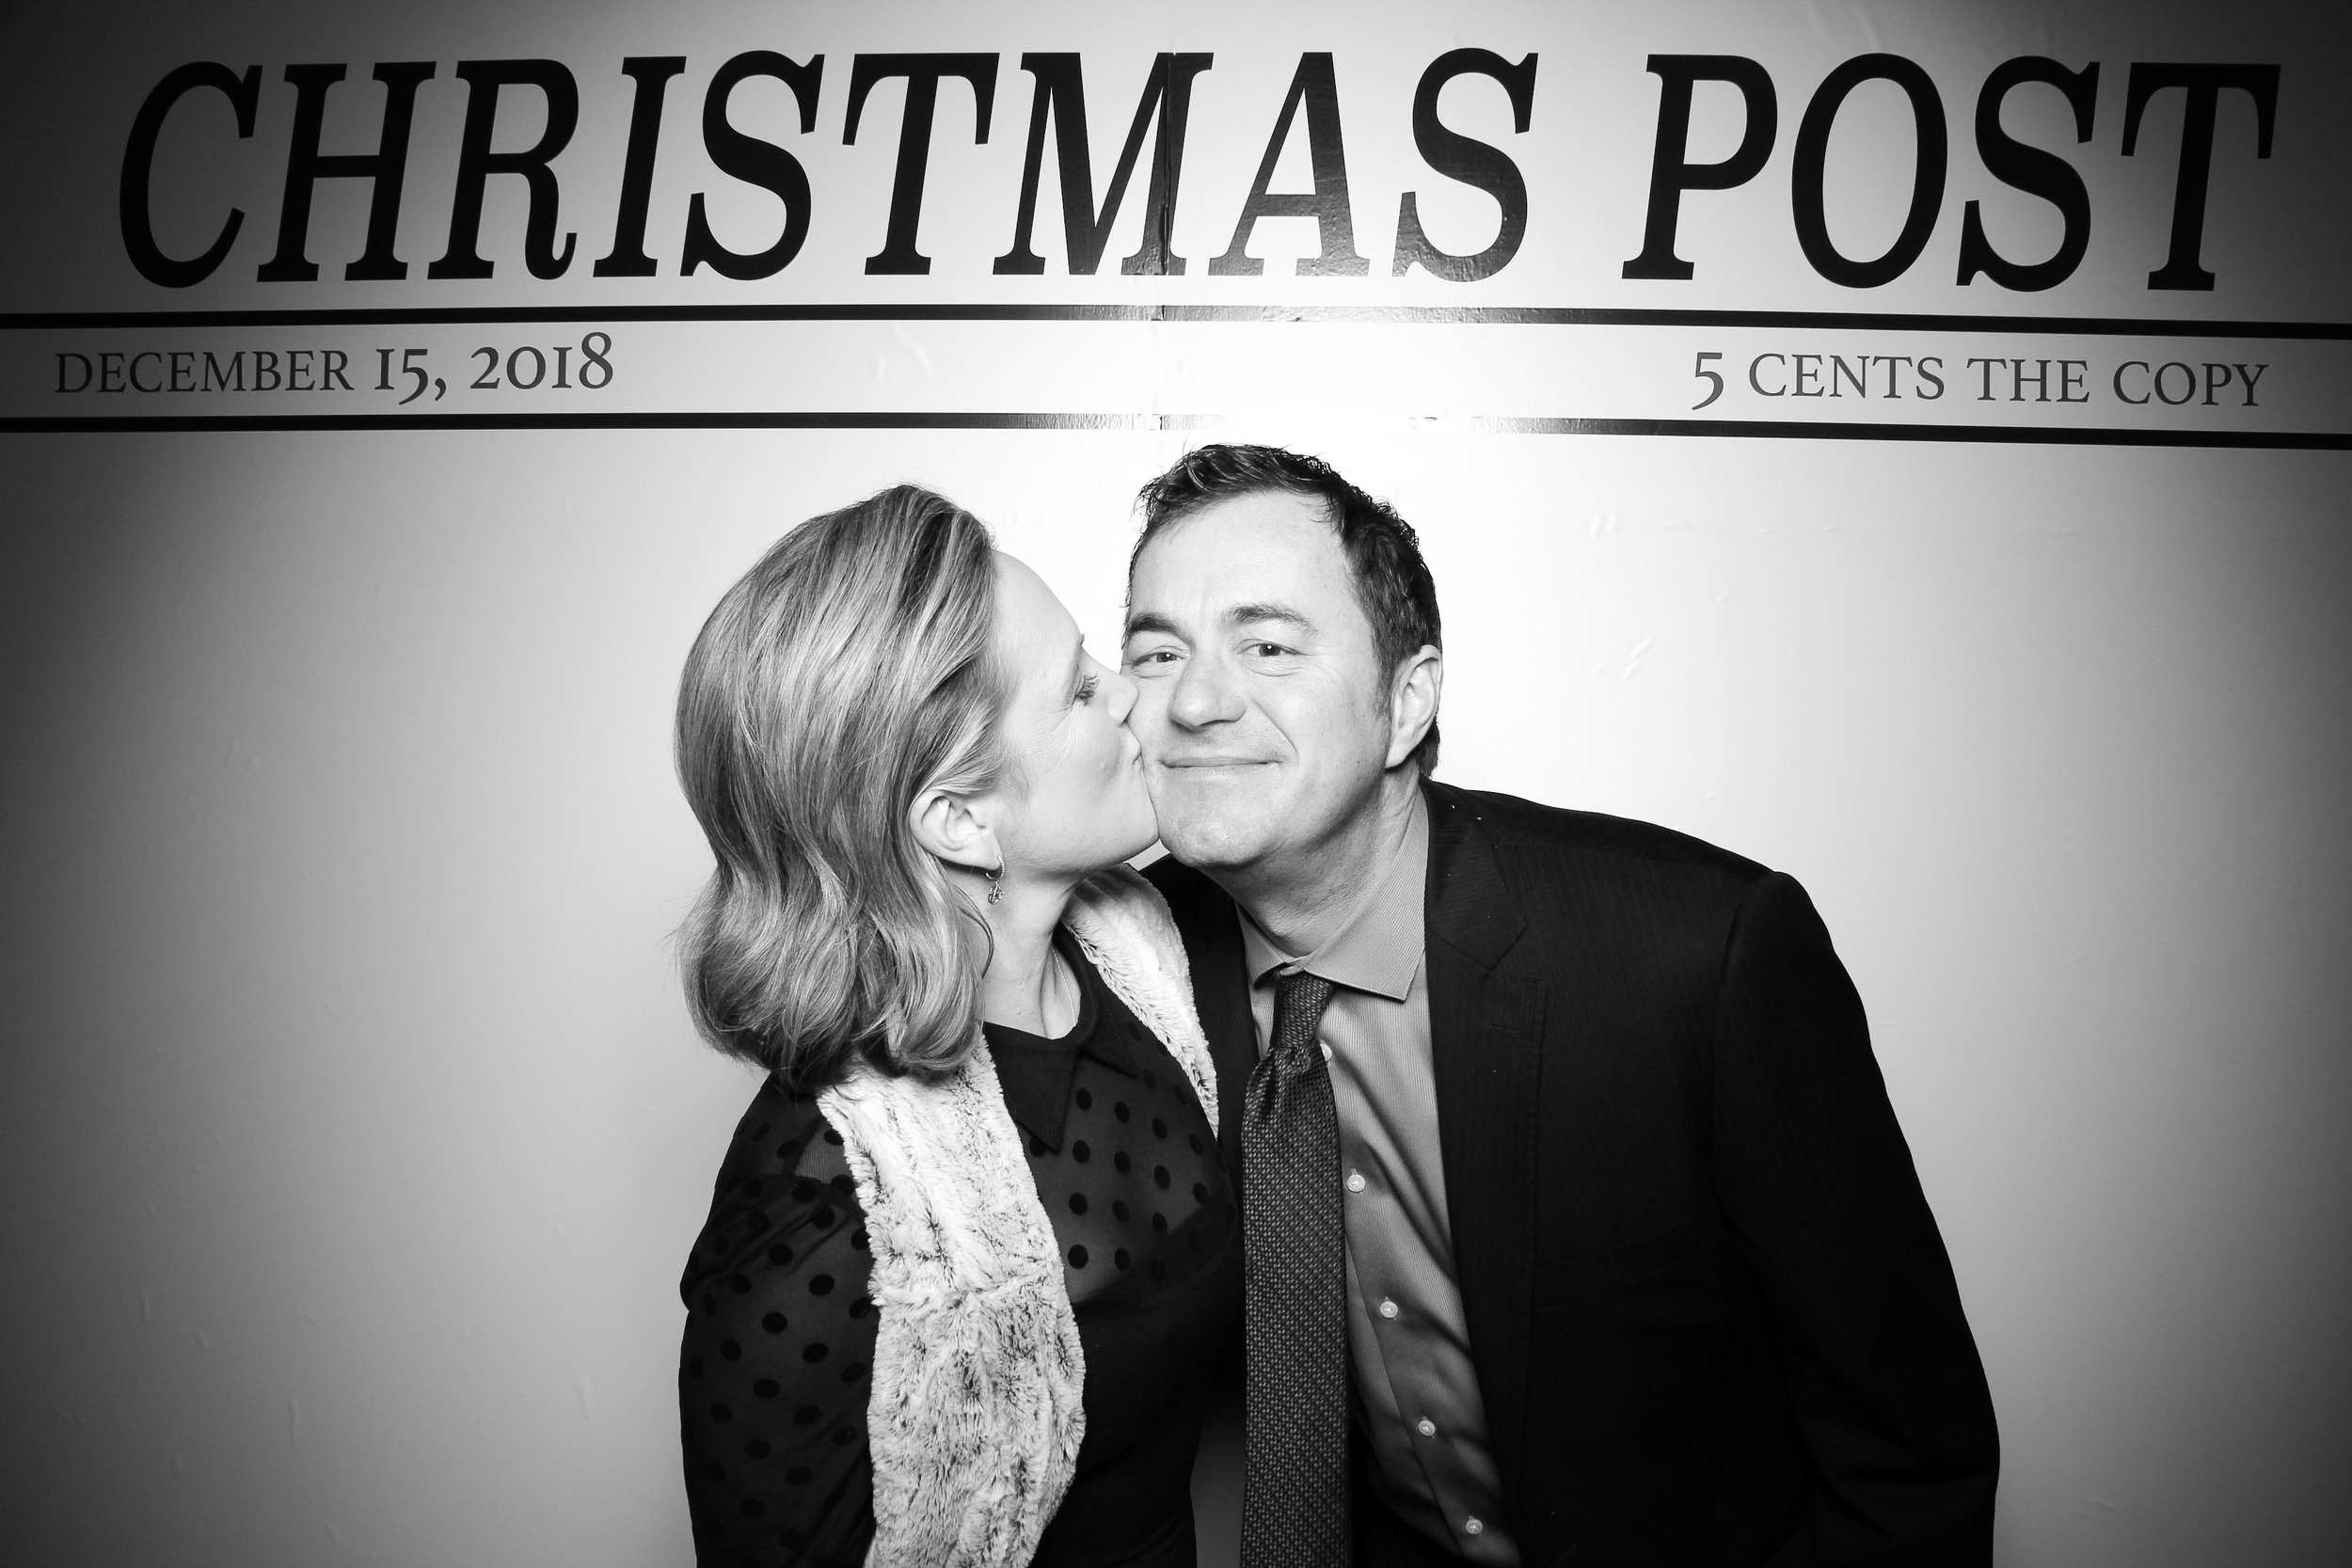 Chicago_Vintage_Photobooth_Rockwell_Holiday_Party_06.jpg